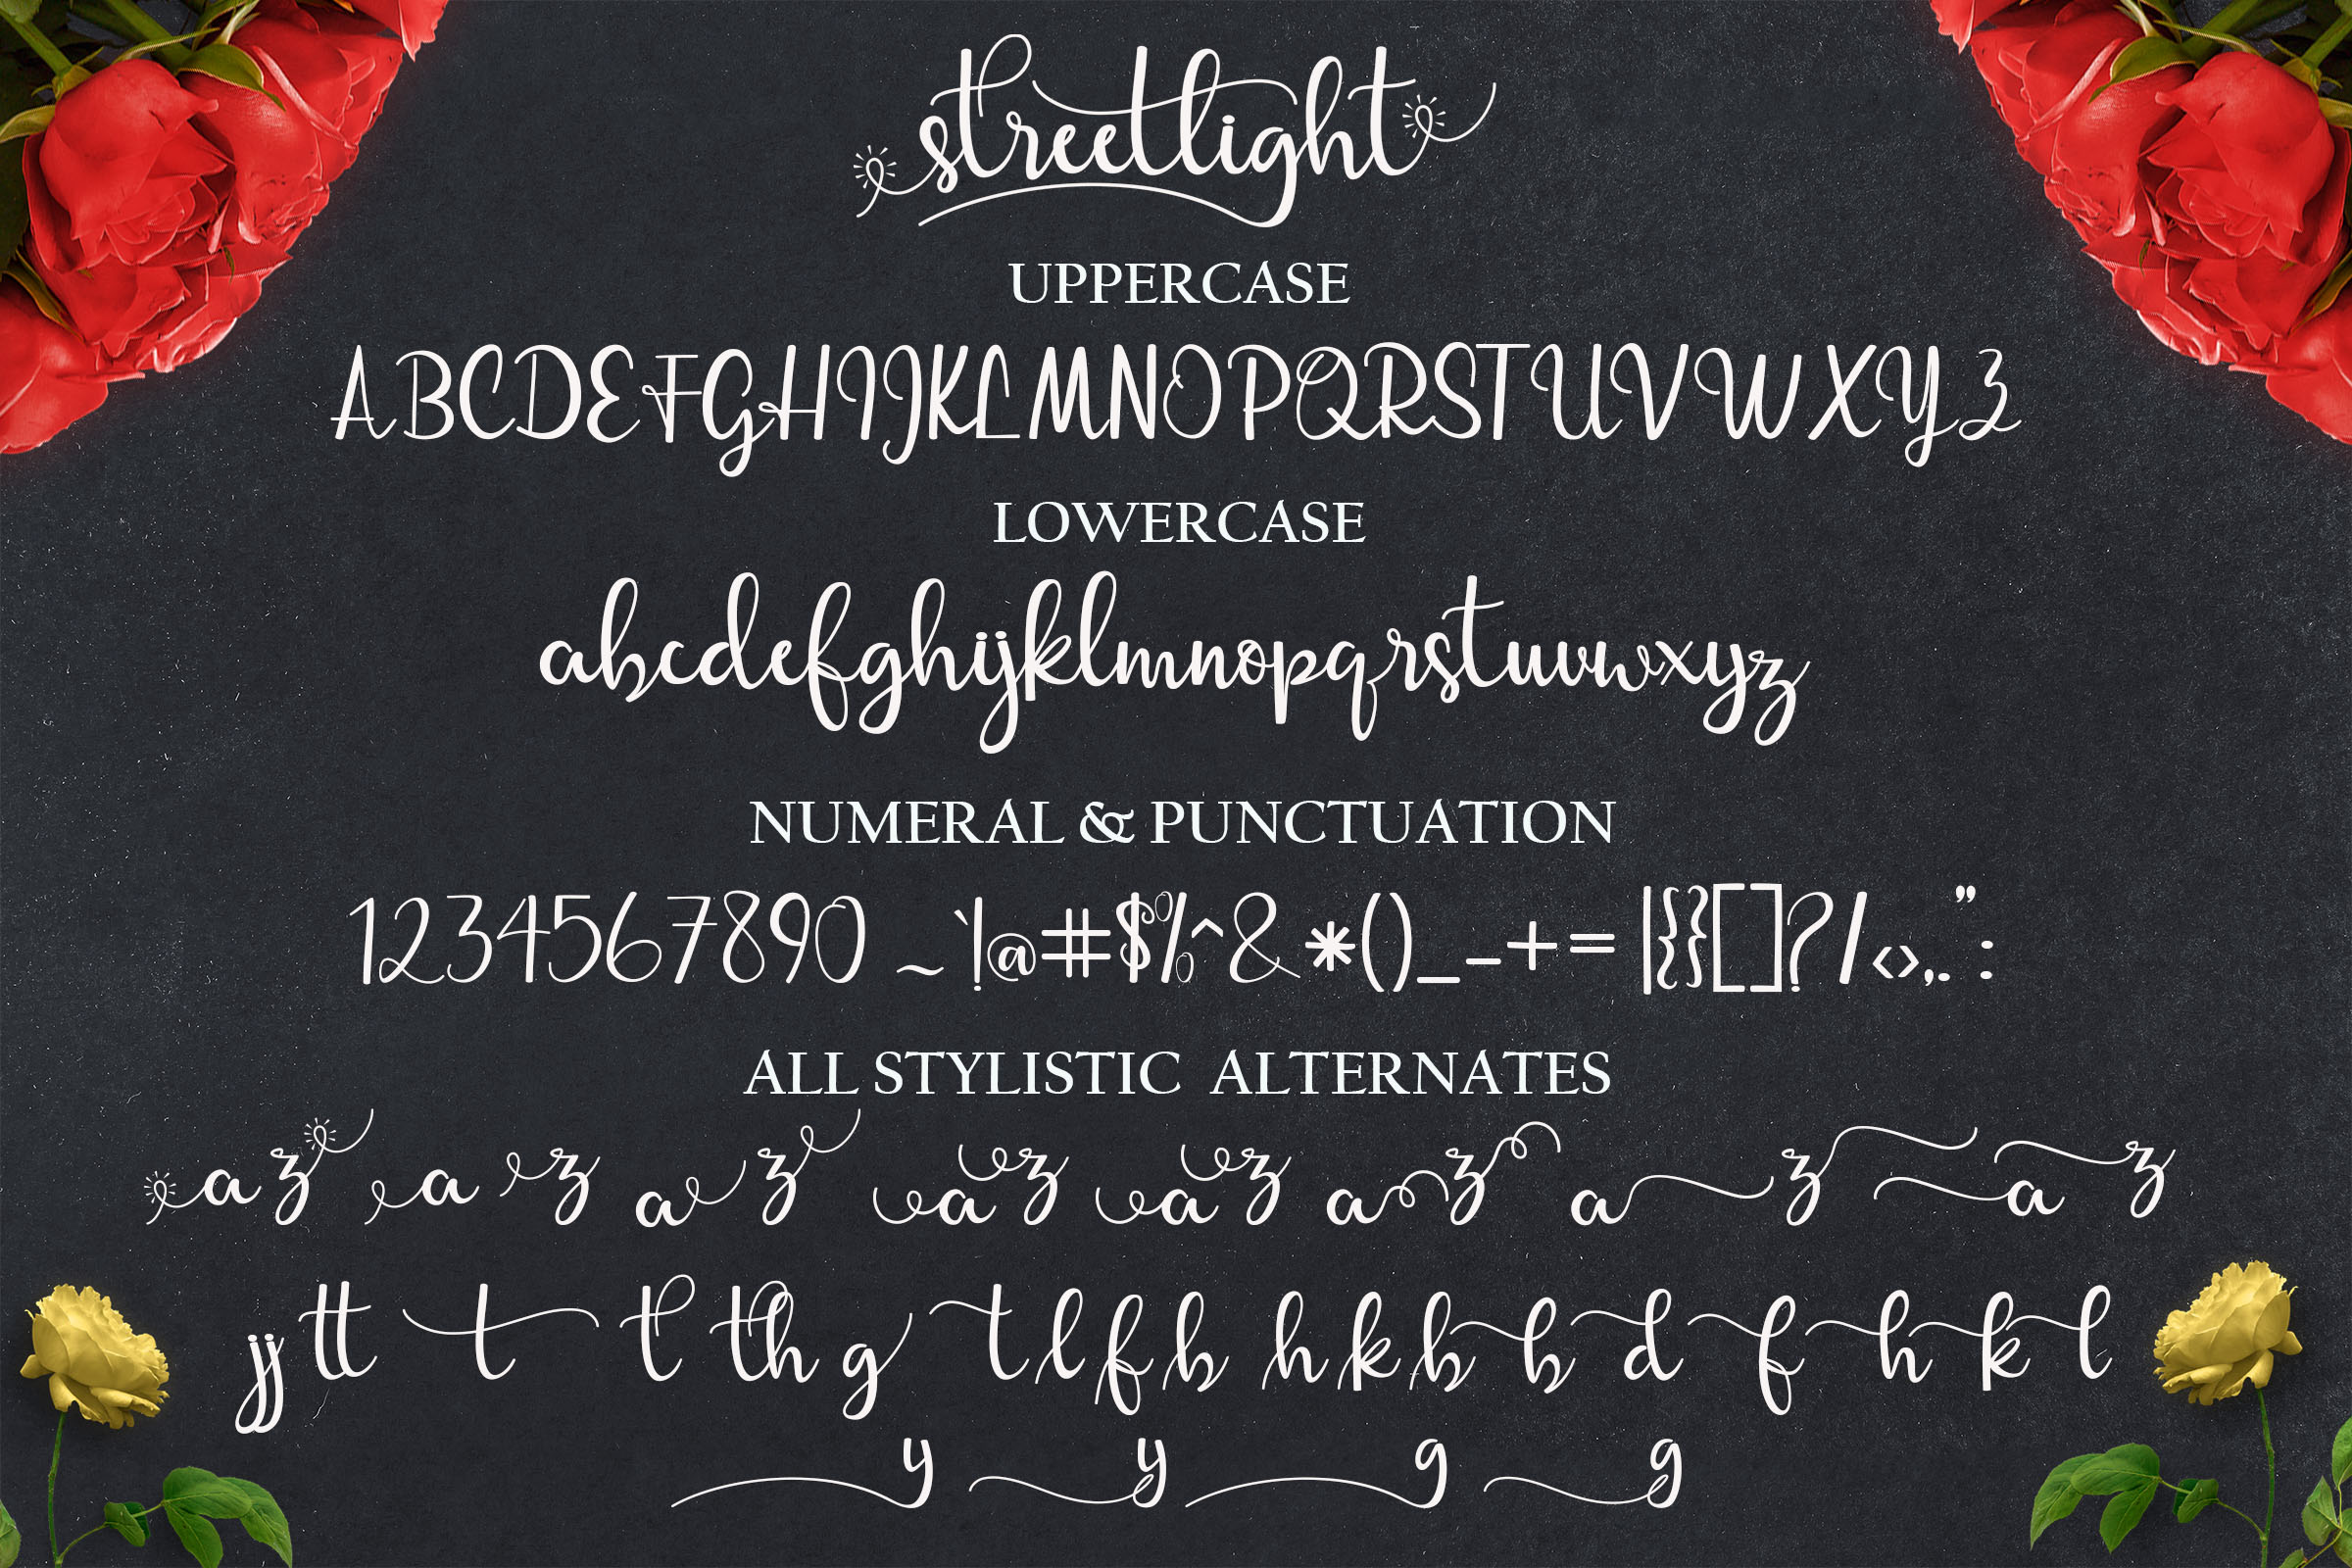 Streetlight Font By Mrletters Image 10